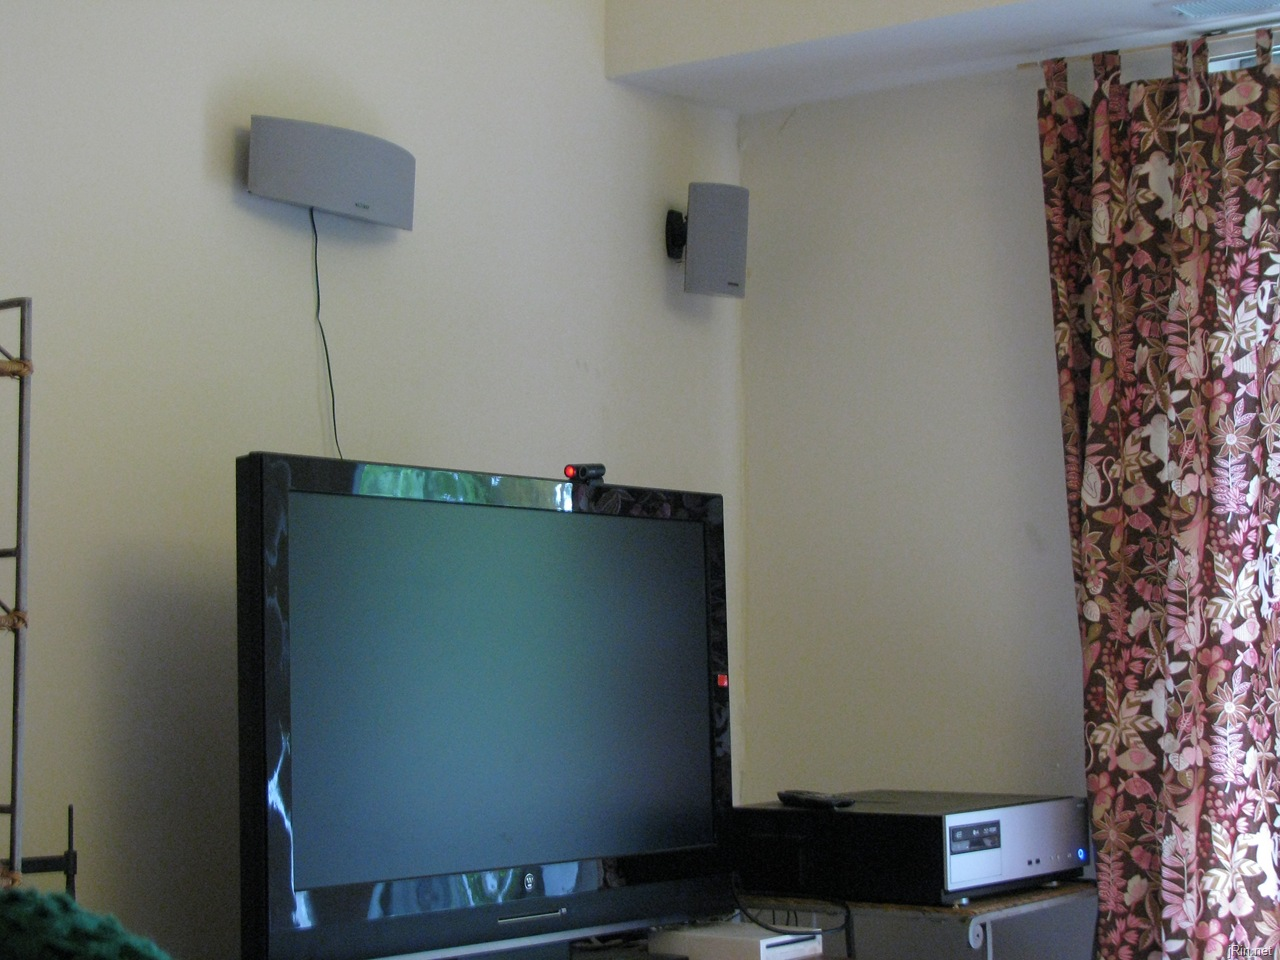 Speaker Wires From Wall : How to hide wall mounted speaker wires in your apartment